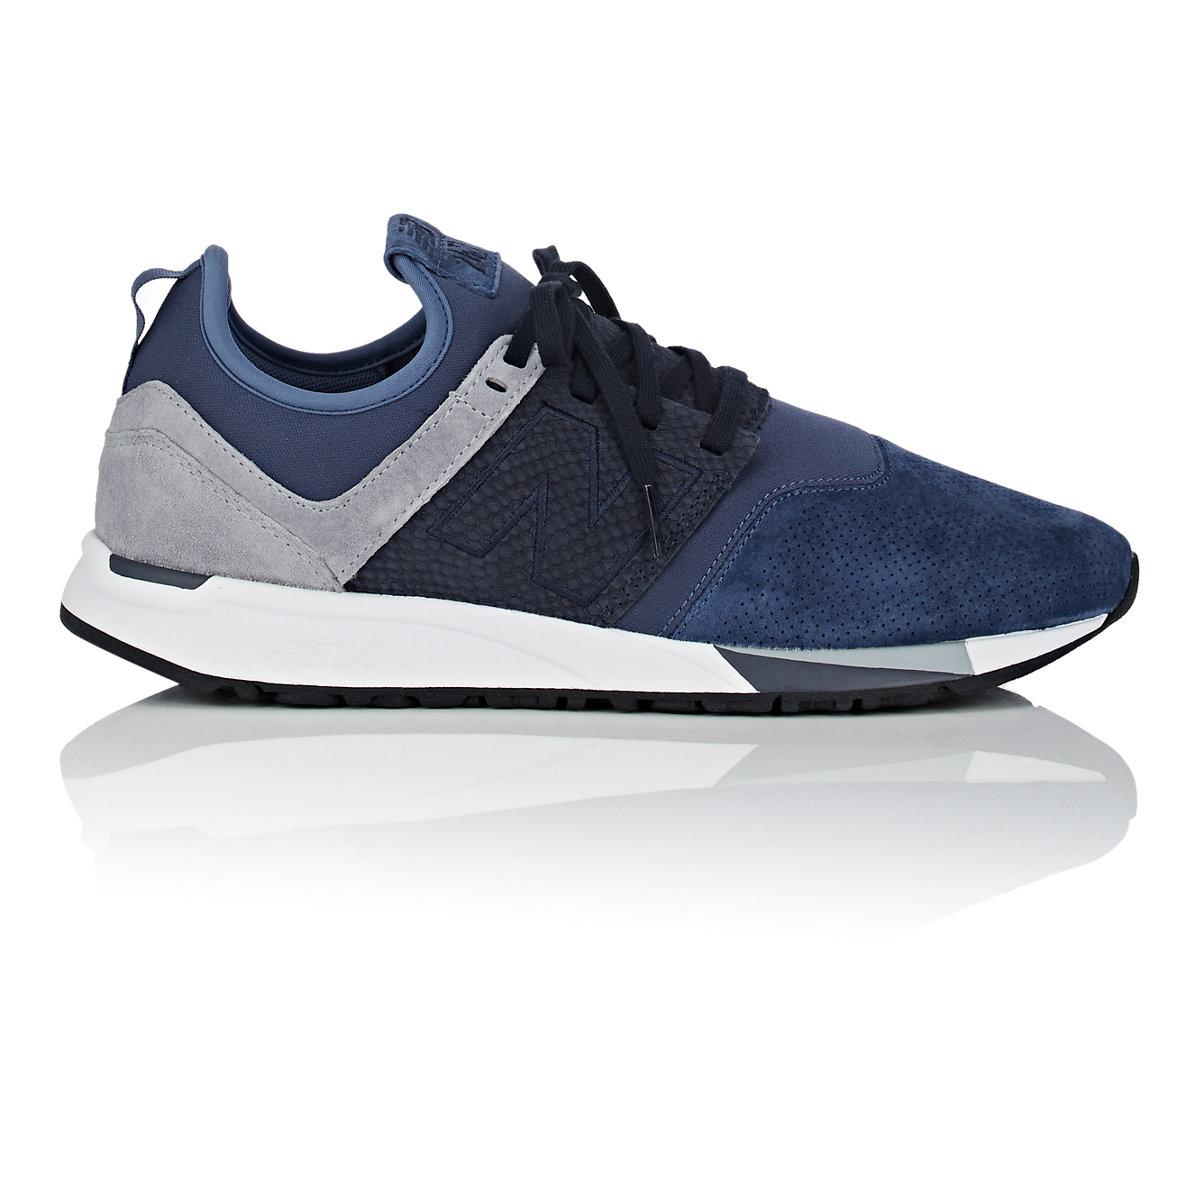 860a9f9ab0503 New Balance 247 Luxe Nubuck & Neoprene Sneakers in Blue for Men - Lyst